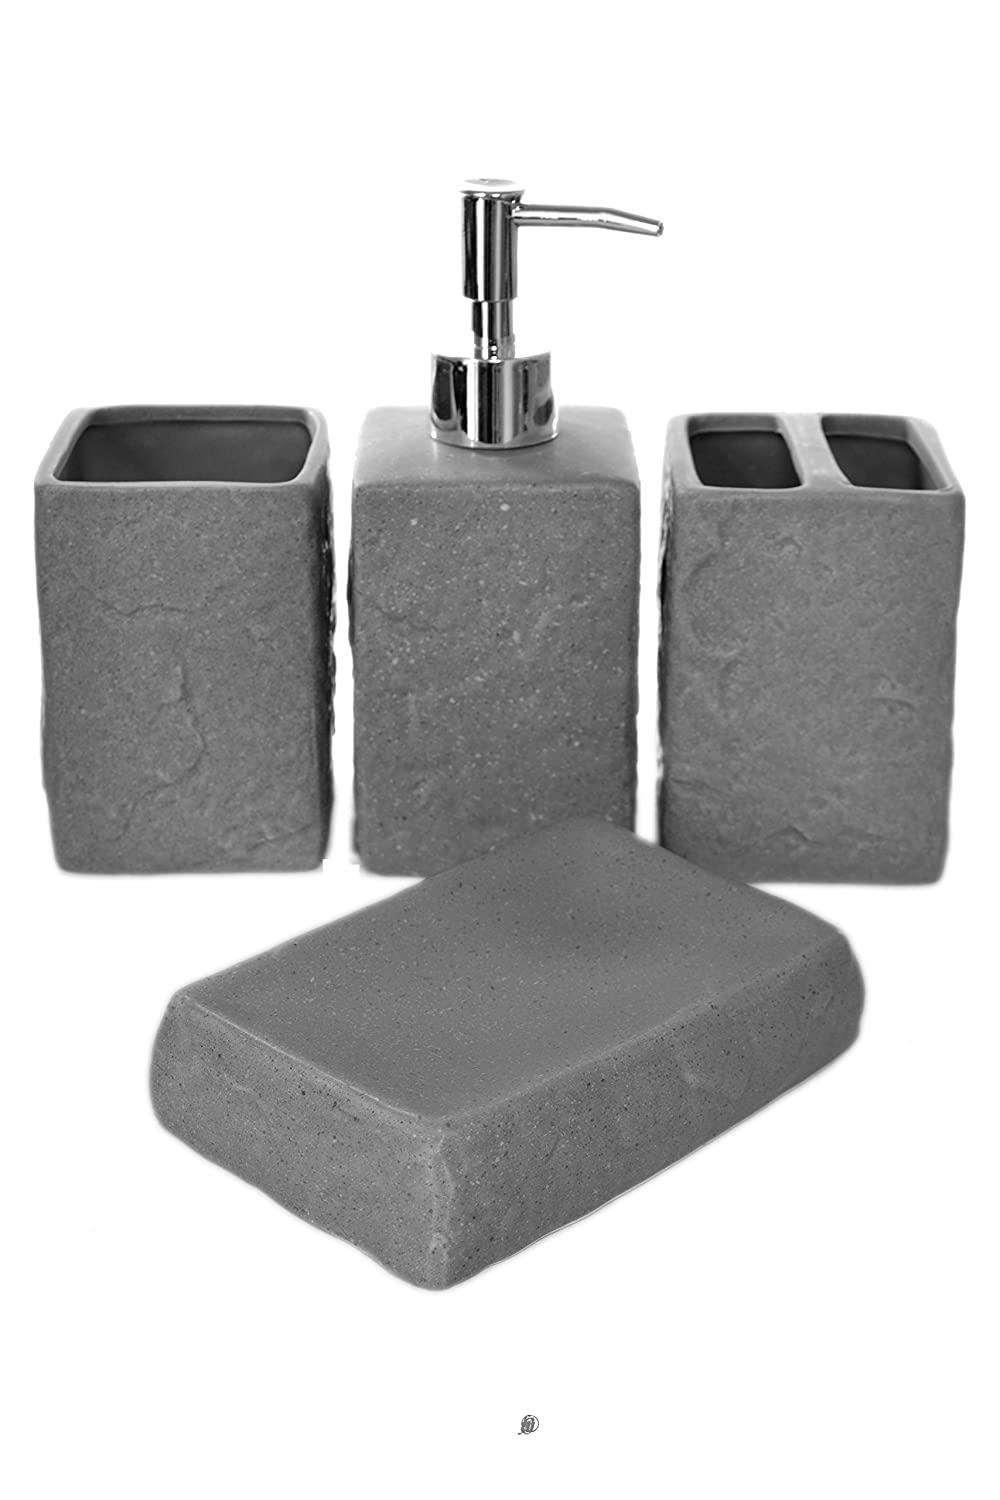 4 Piece Concrete-Look Grey/Silver Ceramic Bath Bathroom Accessory Set American Chateau